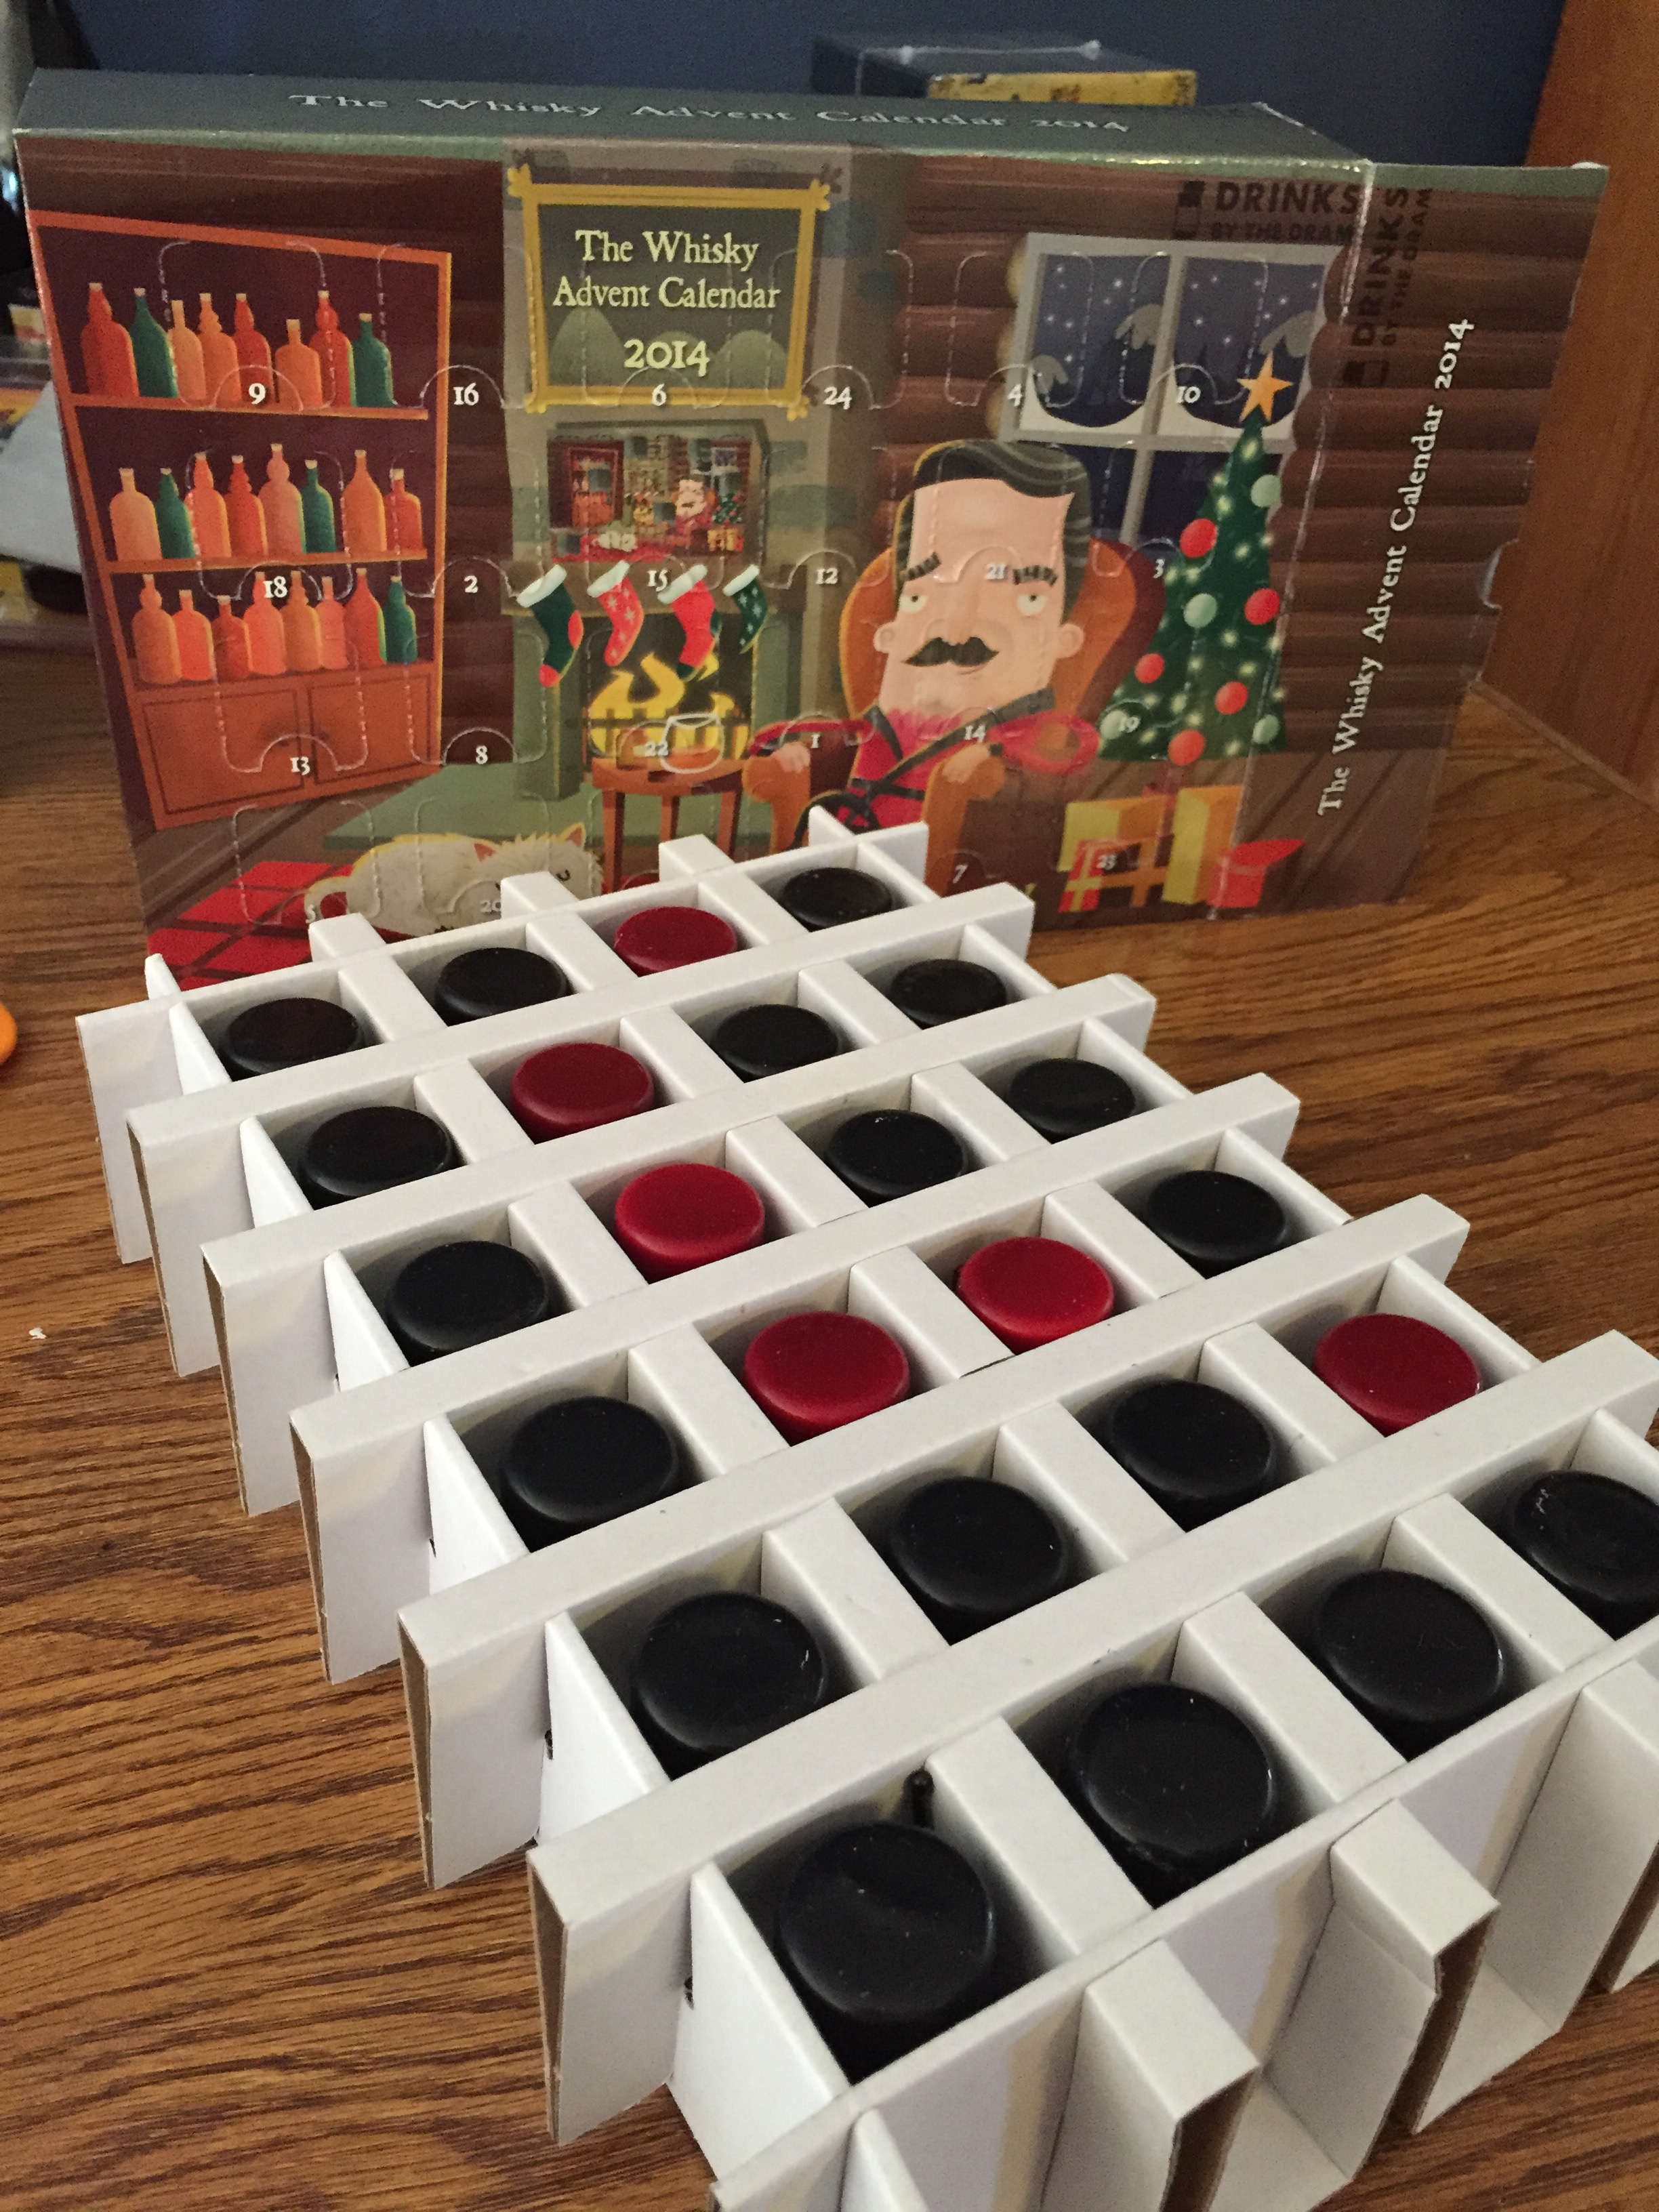 Master of Malt's Whisky Advent Calendar